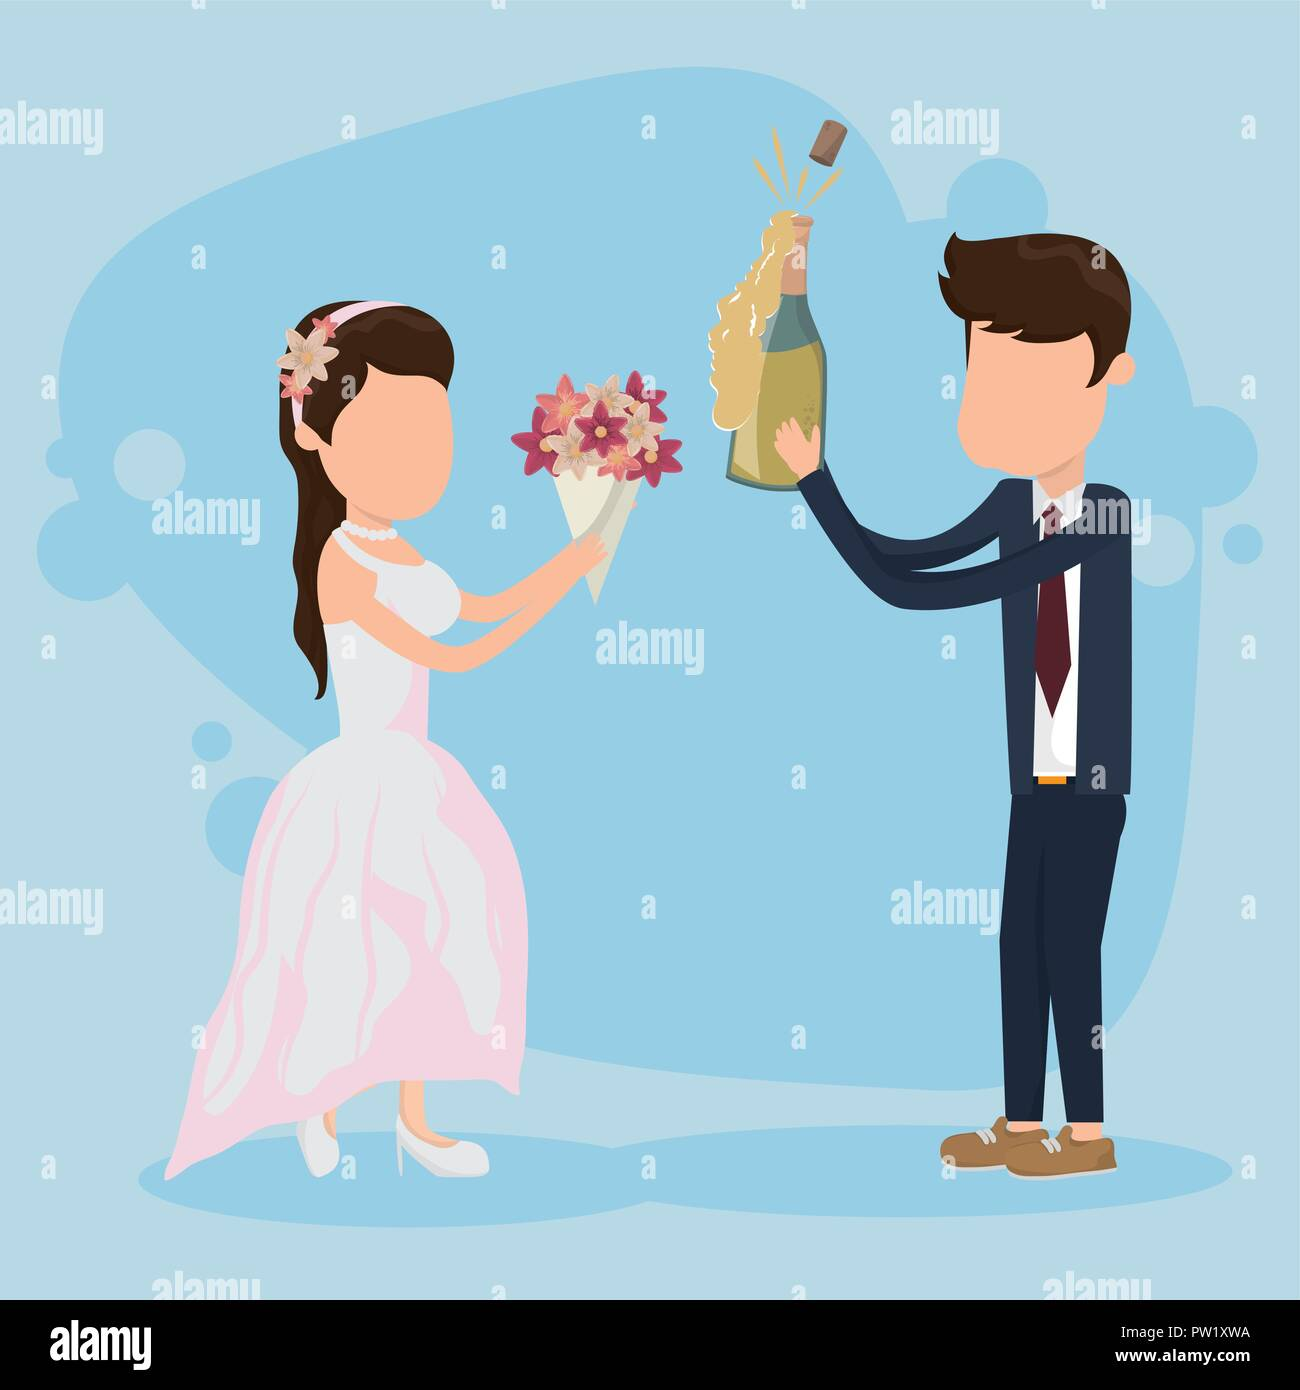 Wedding Just Married Card With Cute Couple Cartoon Stock Vector Image Art Alamy